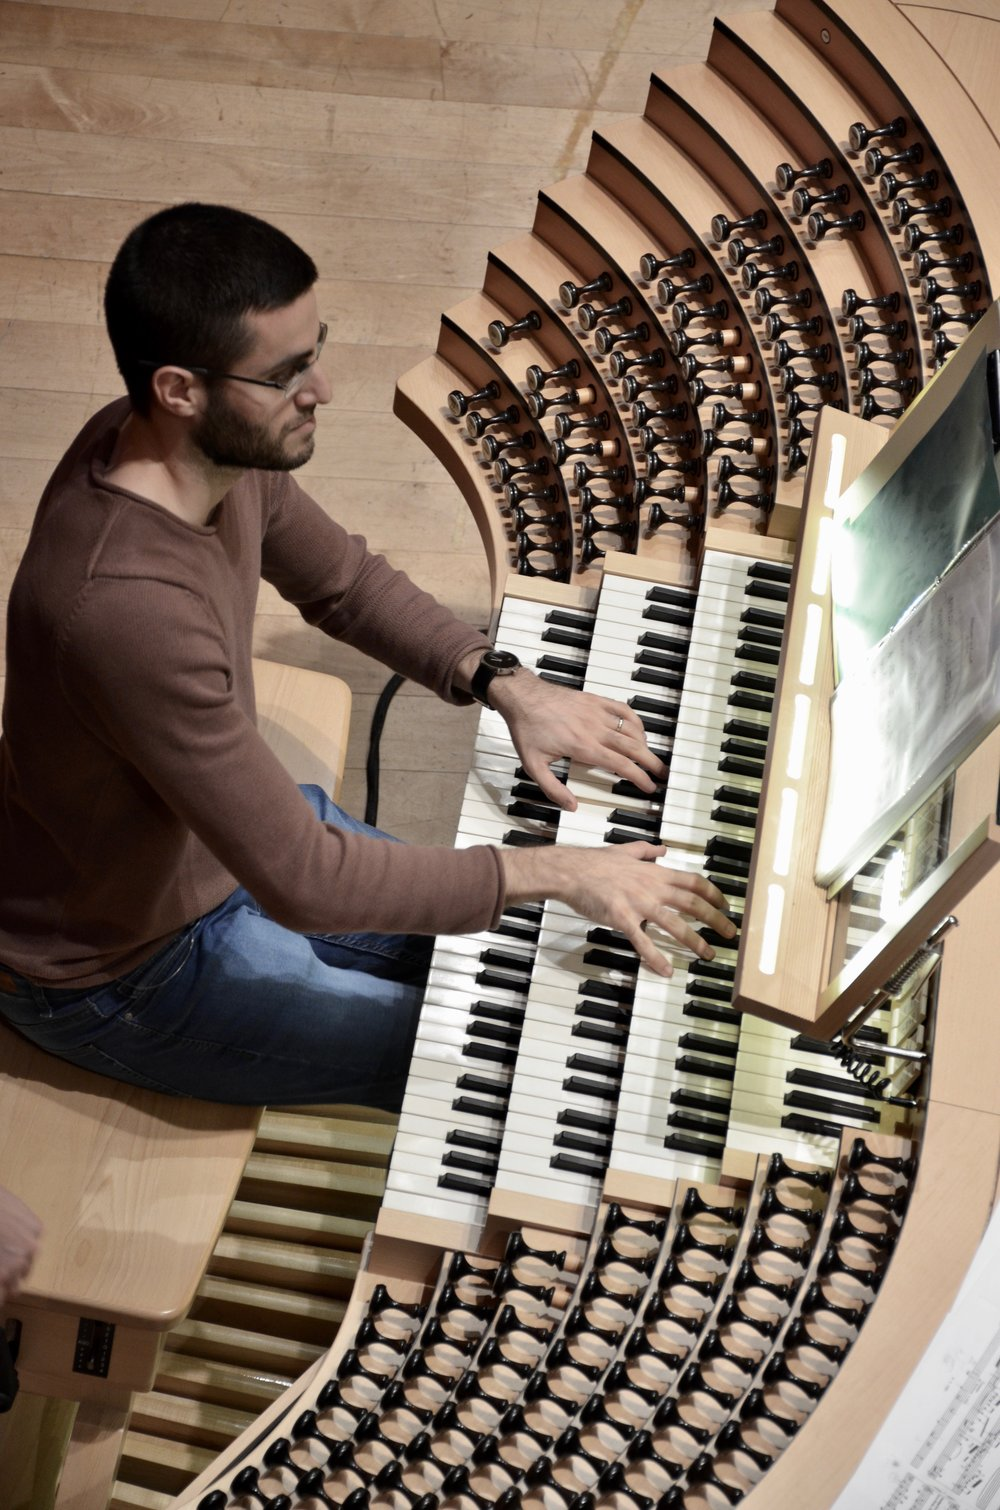 Dor Amram plays the Grand Orgue Pierre-Béique (Casavant) in Maison Symphonique, Montréal